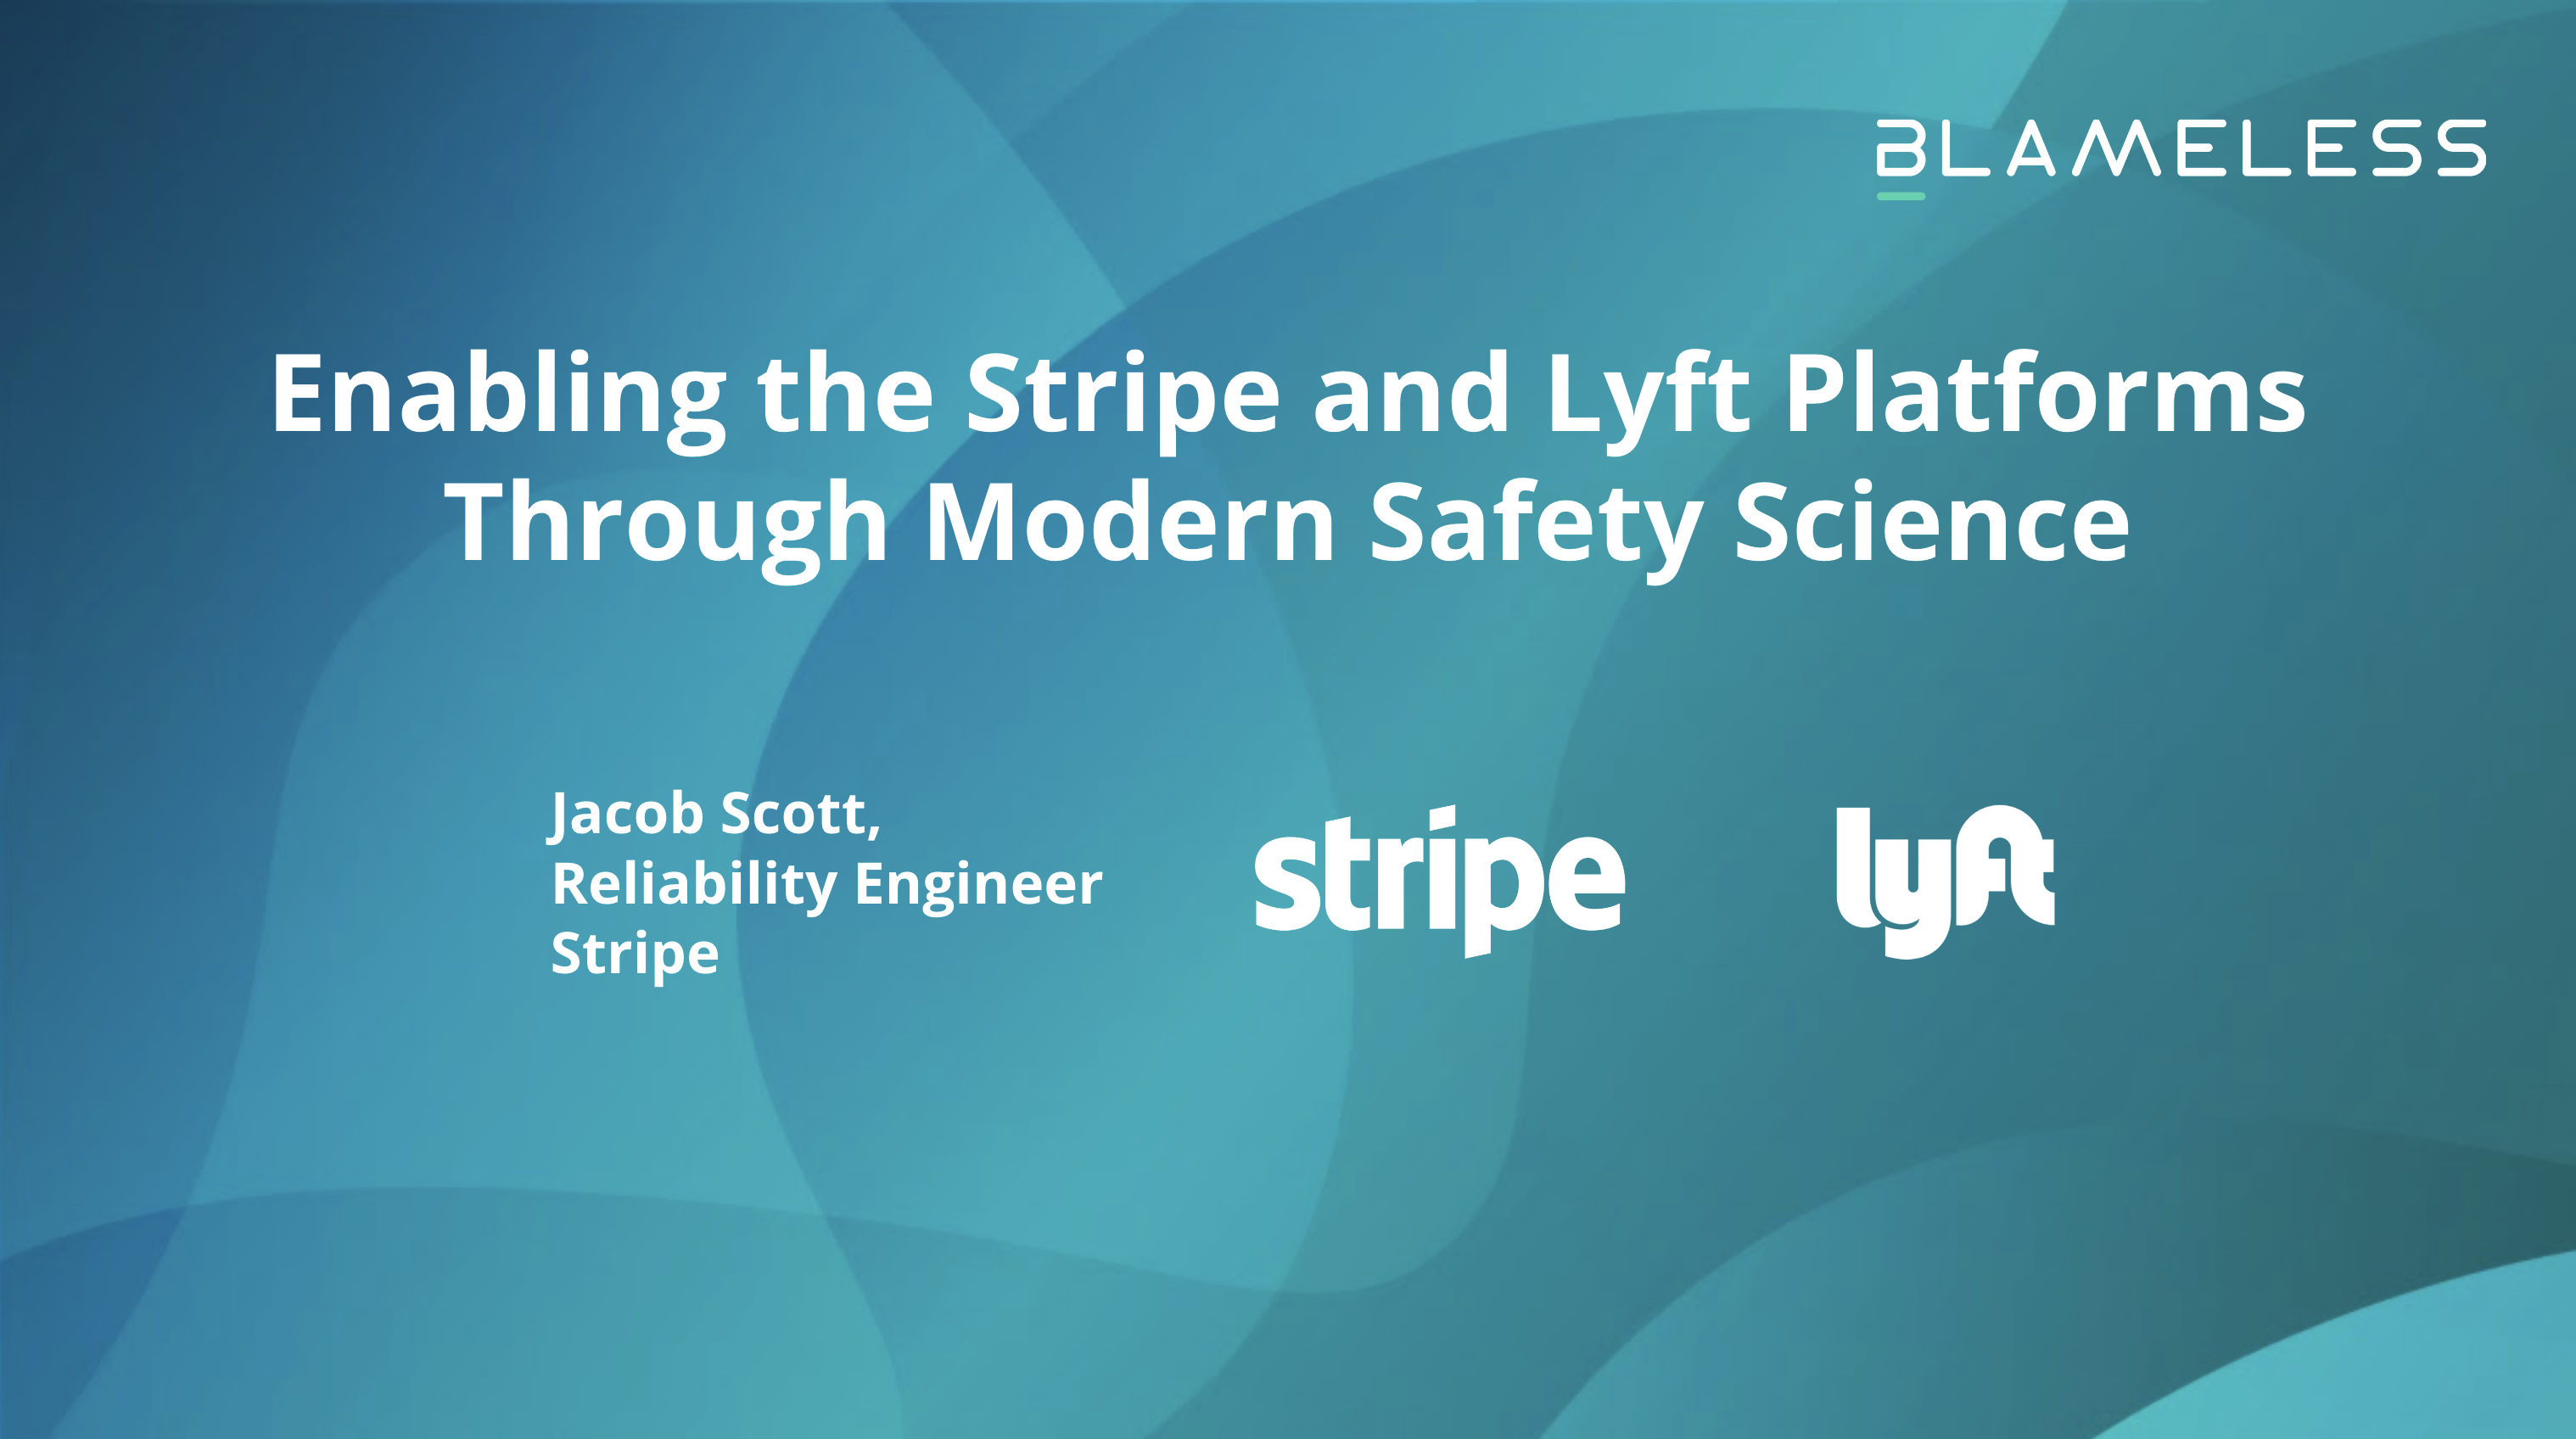 Enabling the Stripe and Lyft Platforms Through Modern Safety Science